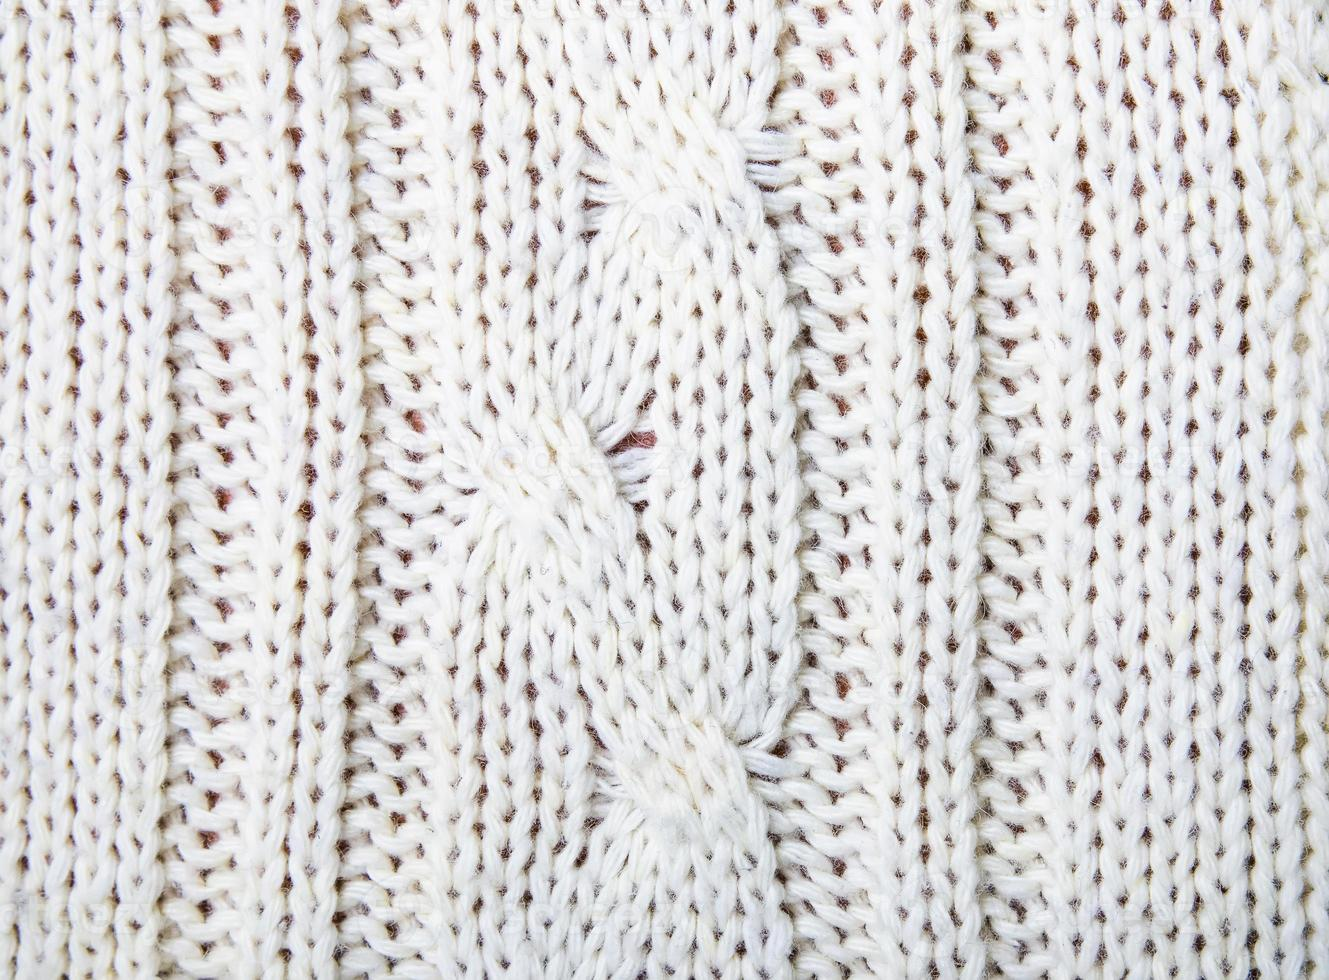 Knitted texture close-up photo